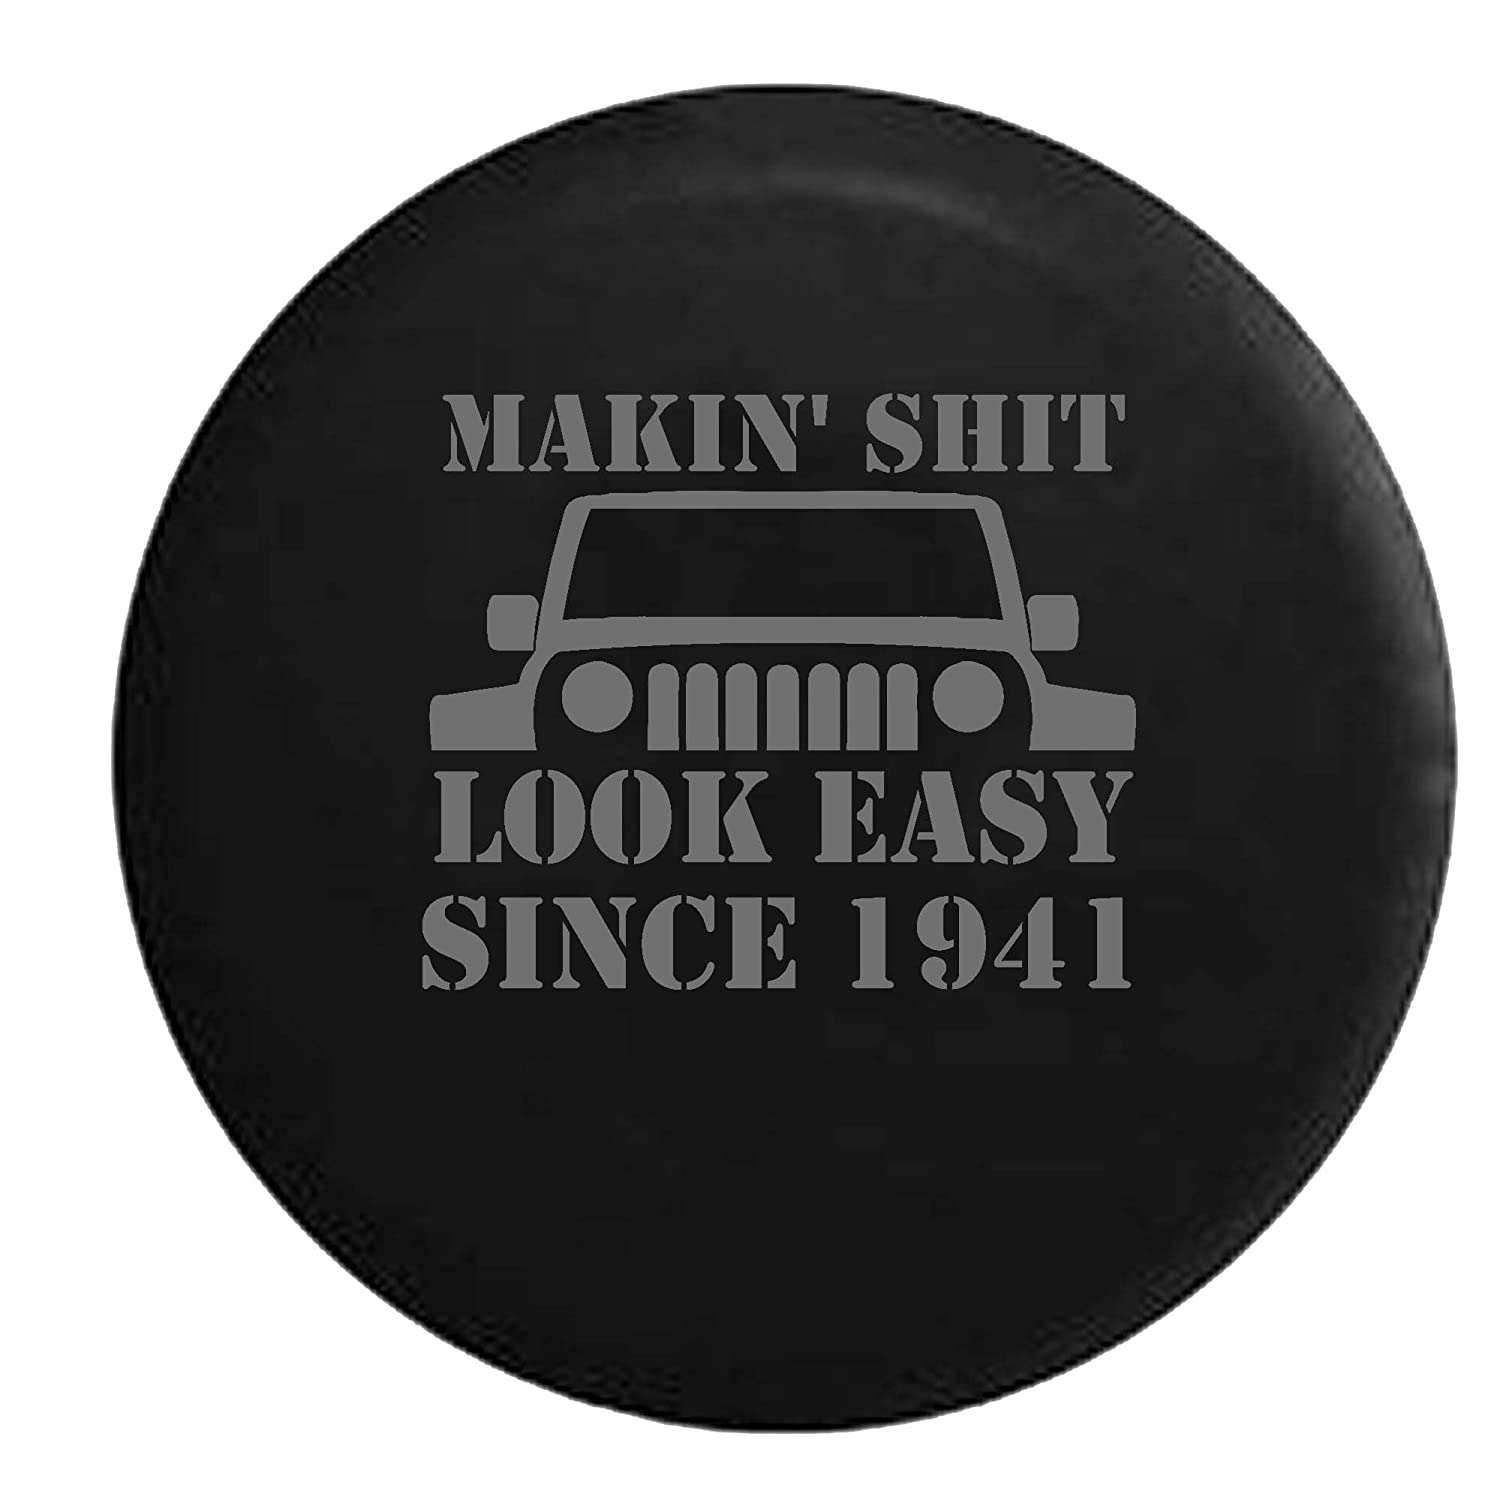 Best Off Road Tire Brand Logo >> Stealth Jeep Wrangler Jk Tj Makin It Look Easy Since 1941 Top Off Road 4x4 Spare Tire Cover Oem Vinyl Black 32 33 In